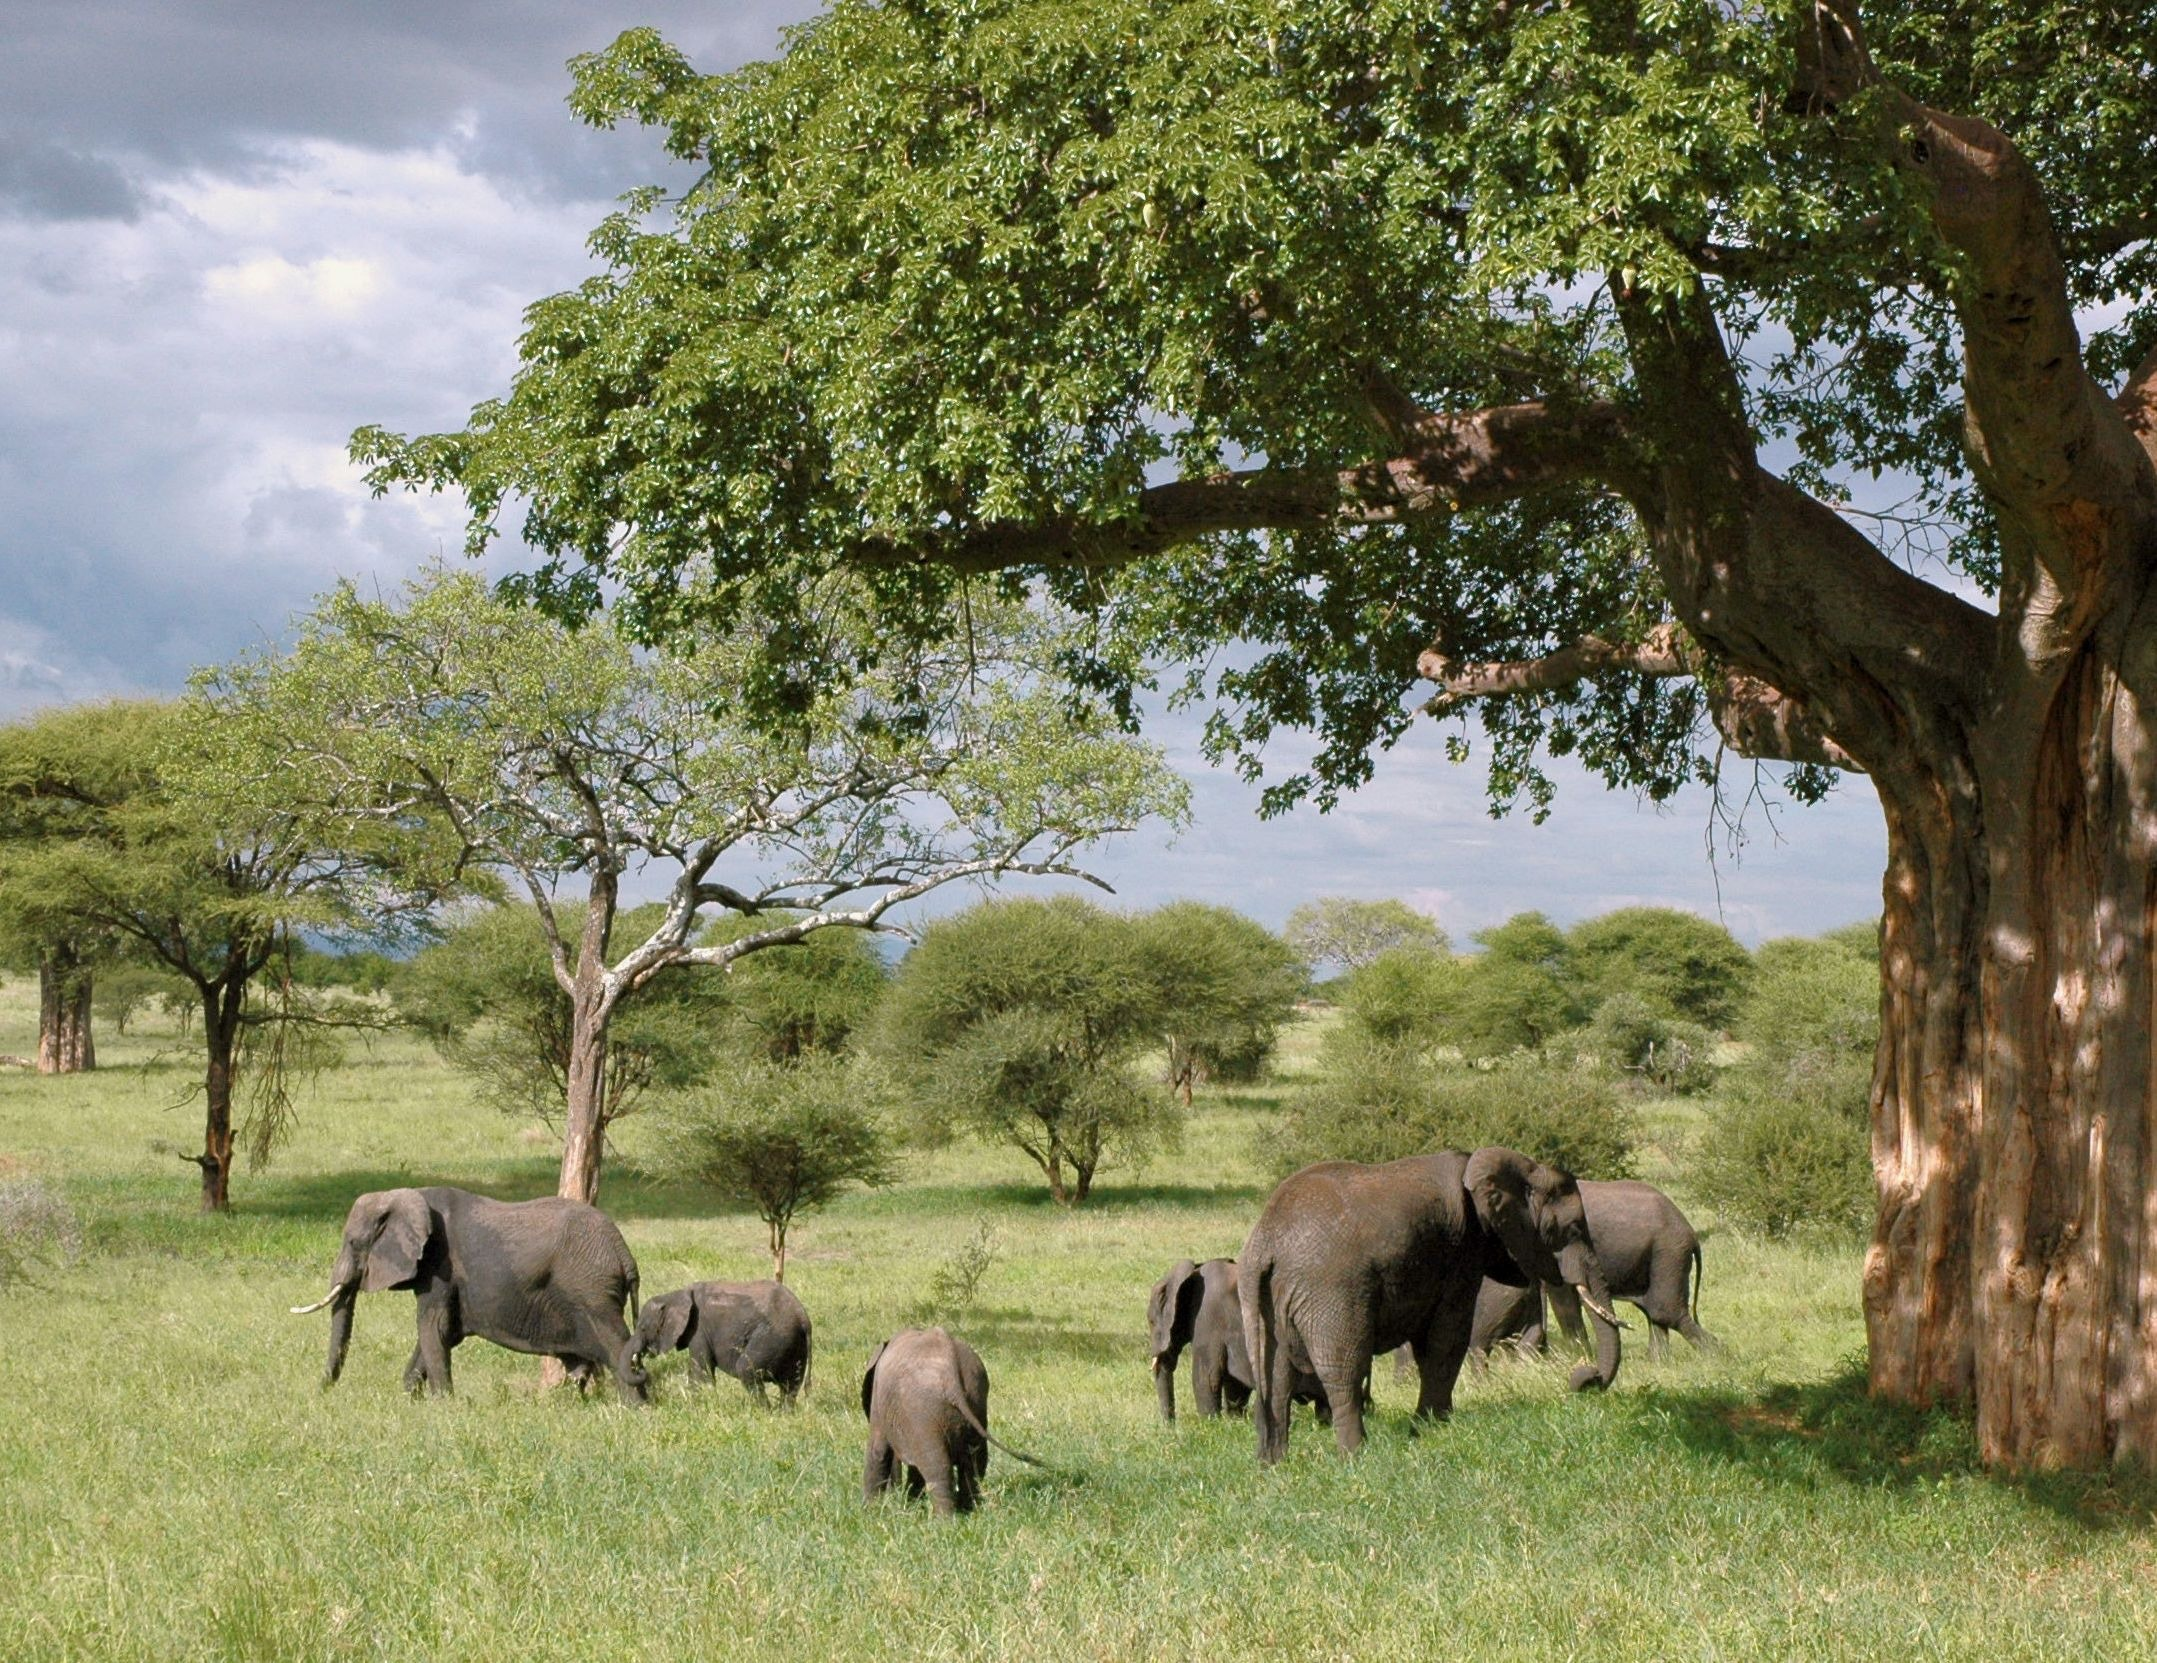 Gray Elephant Herd Under Green Tree on Green Grass Fields during Daytime, Africa, Animal photography, Animals, Elephants, HQ Photo